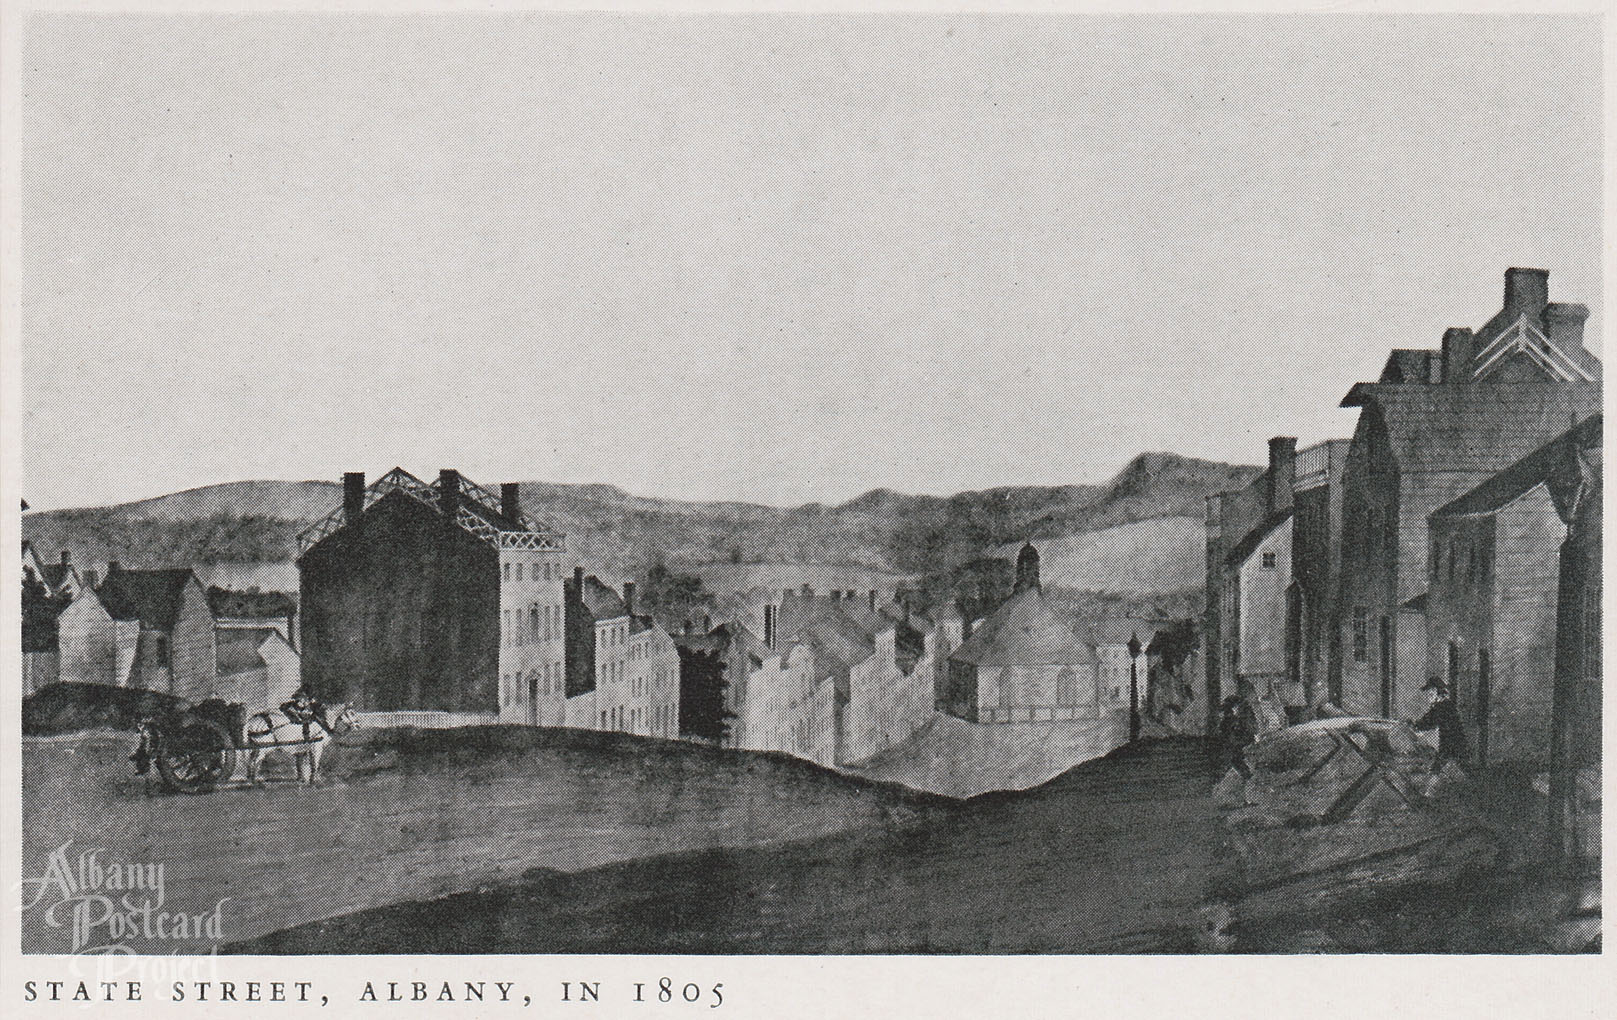 State Street in 1805